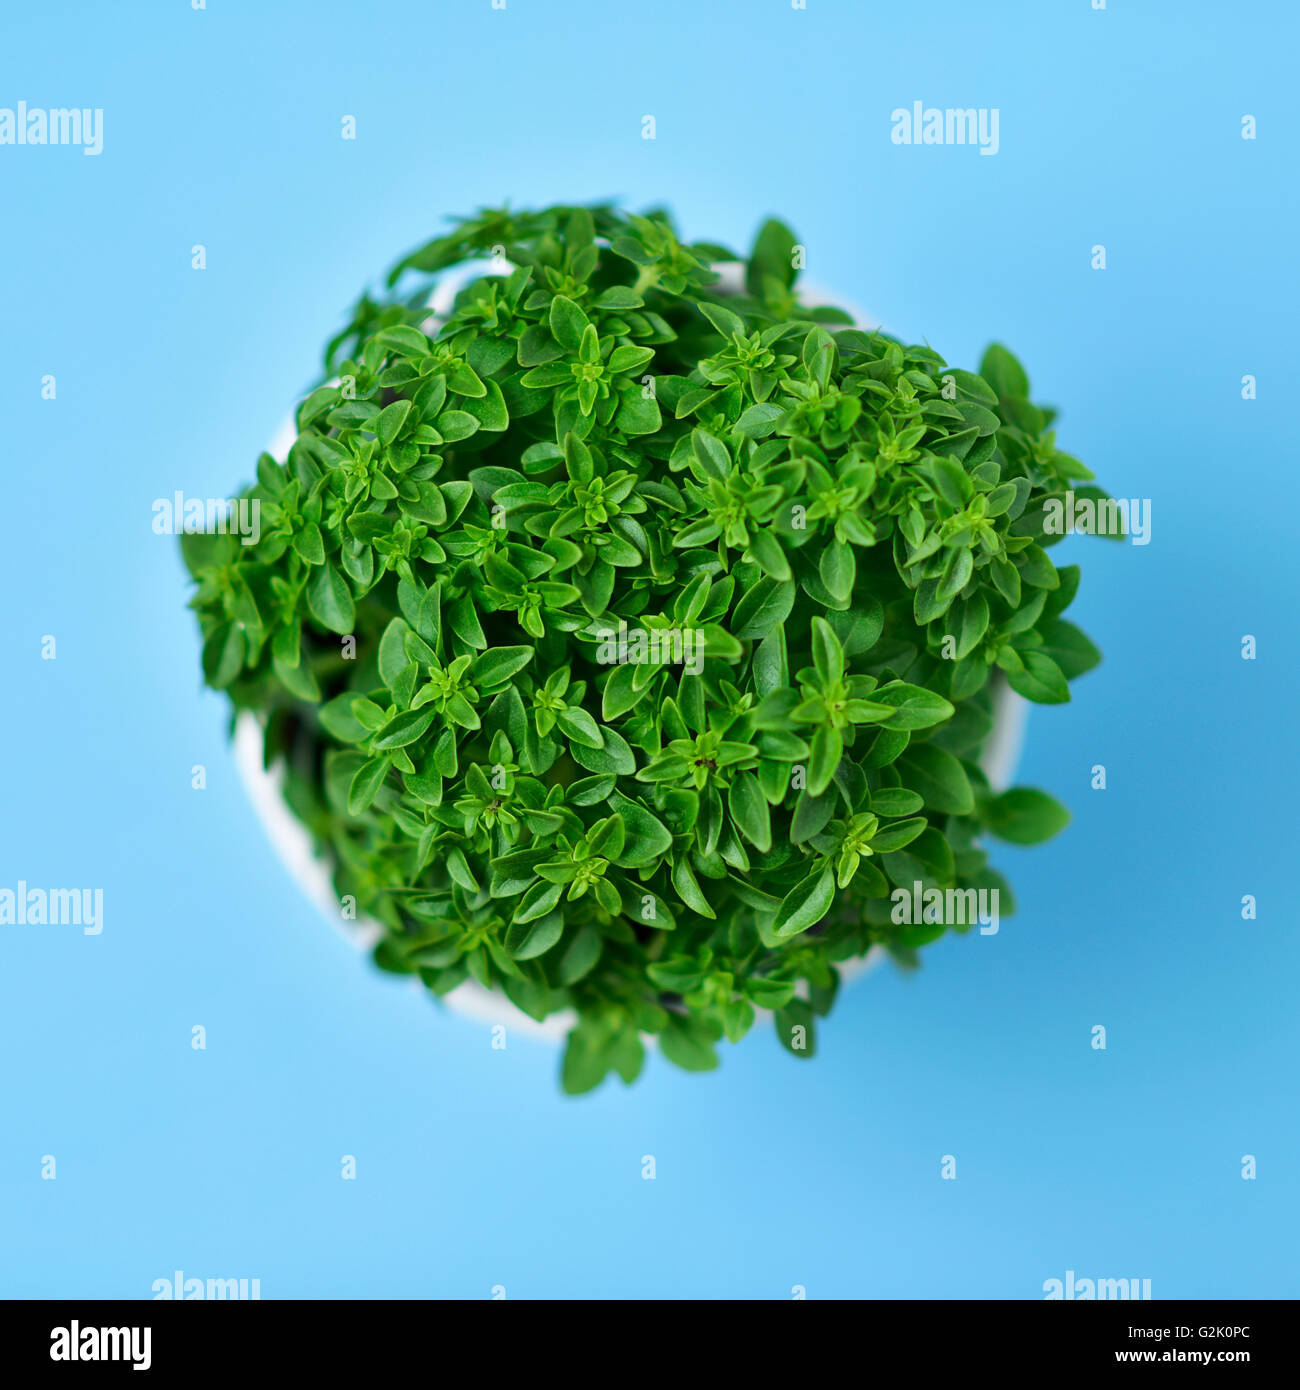 high-angle shot of a green bush basil plant in a white ceramic plant pot on a blue background - Stock Image